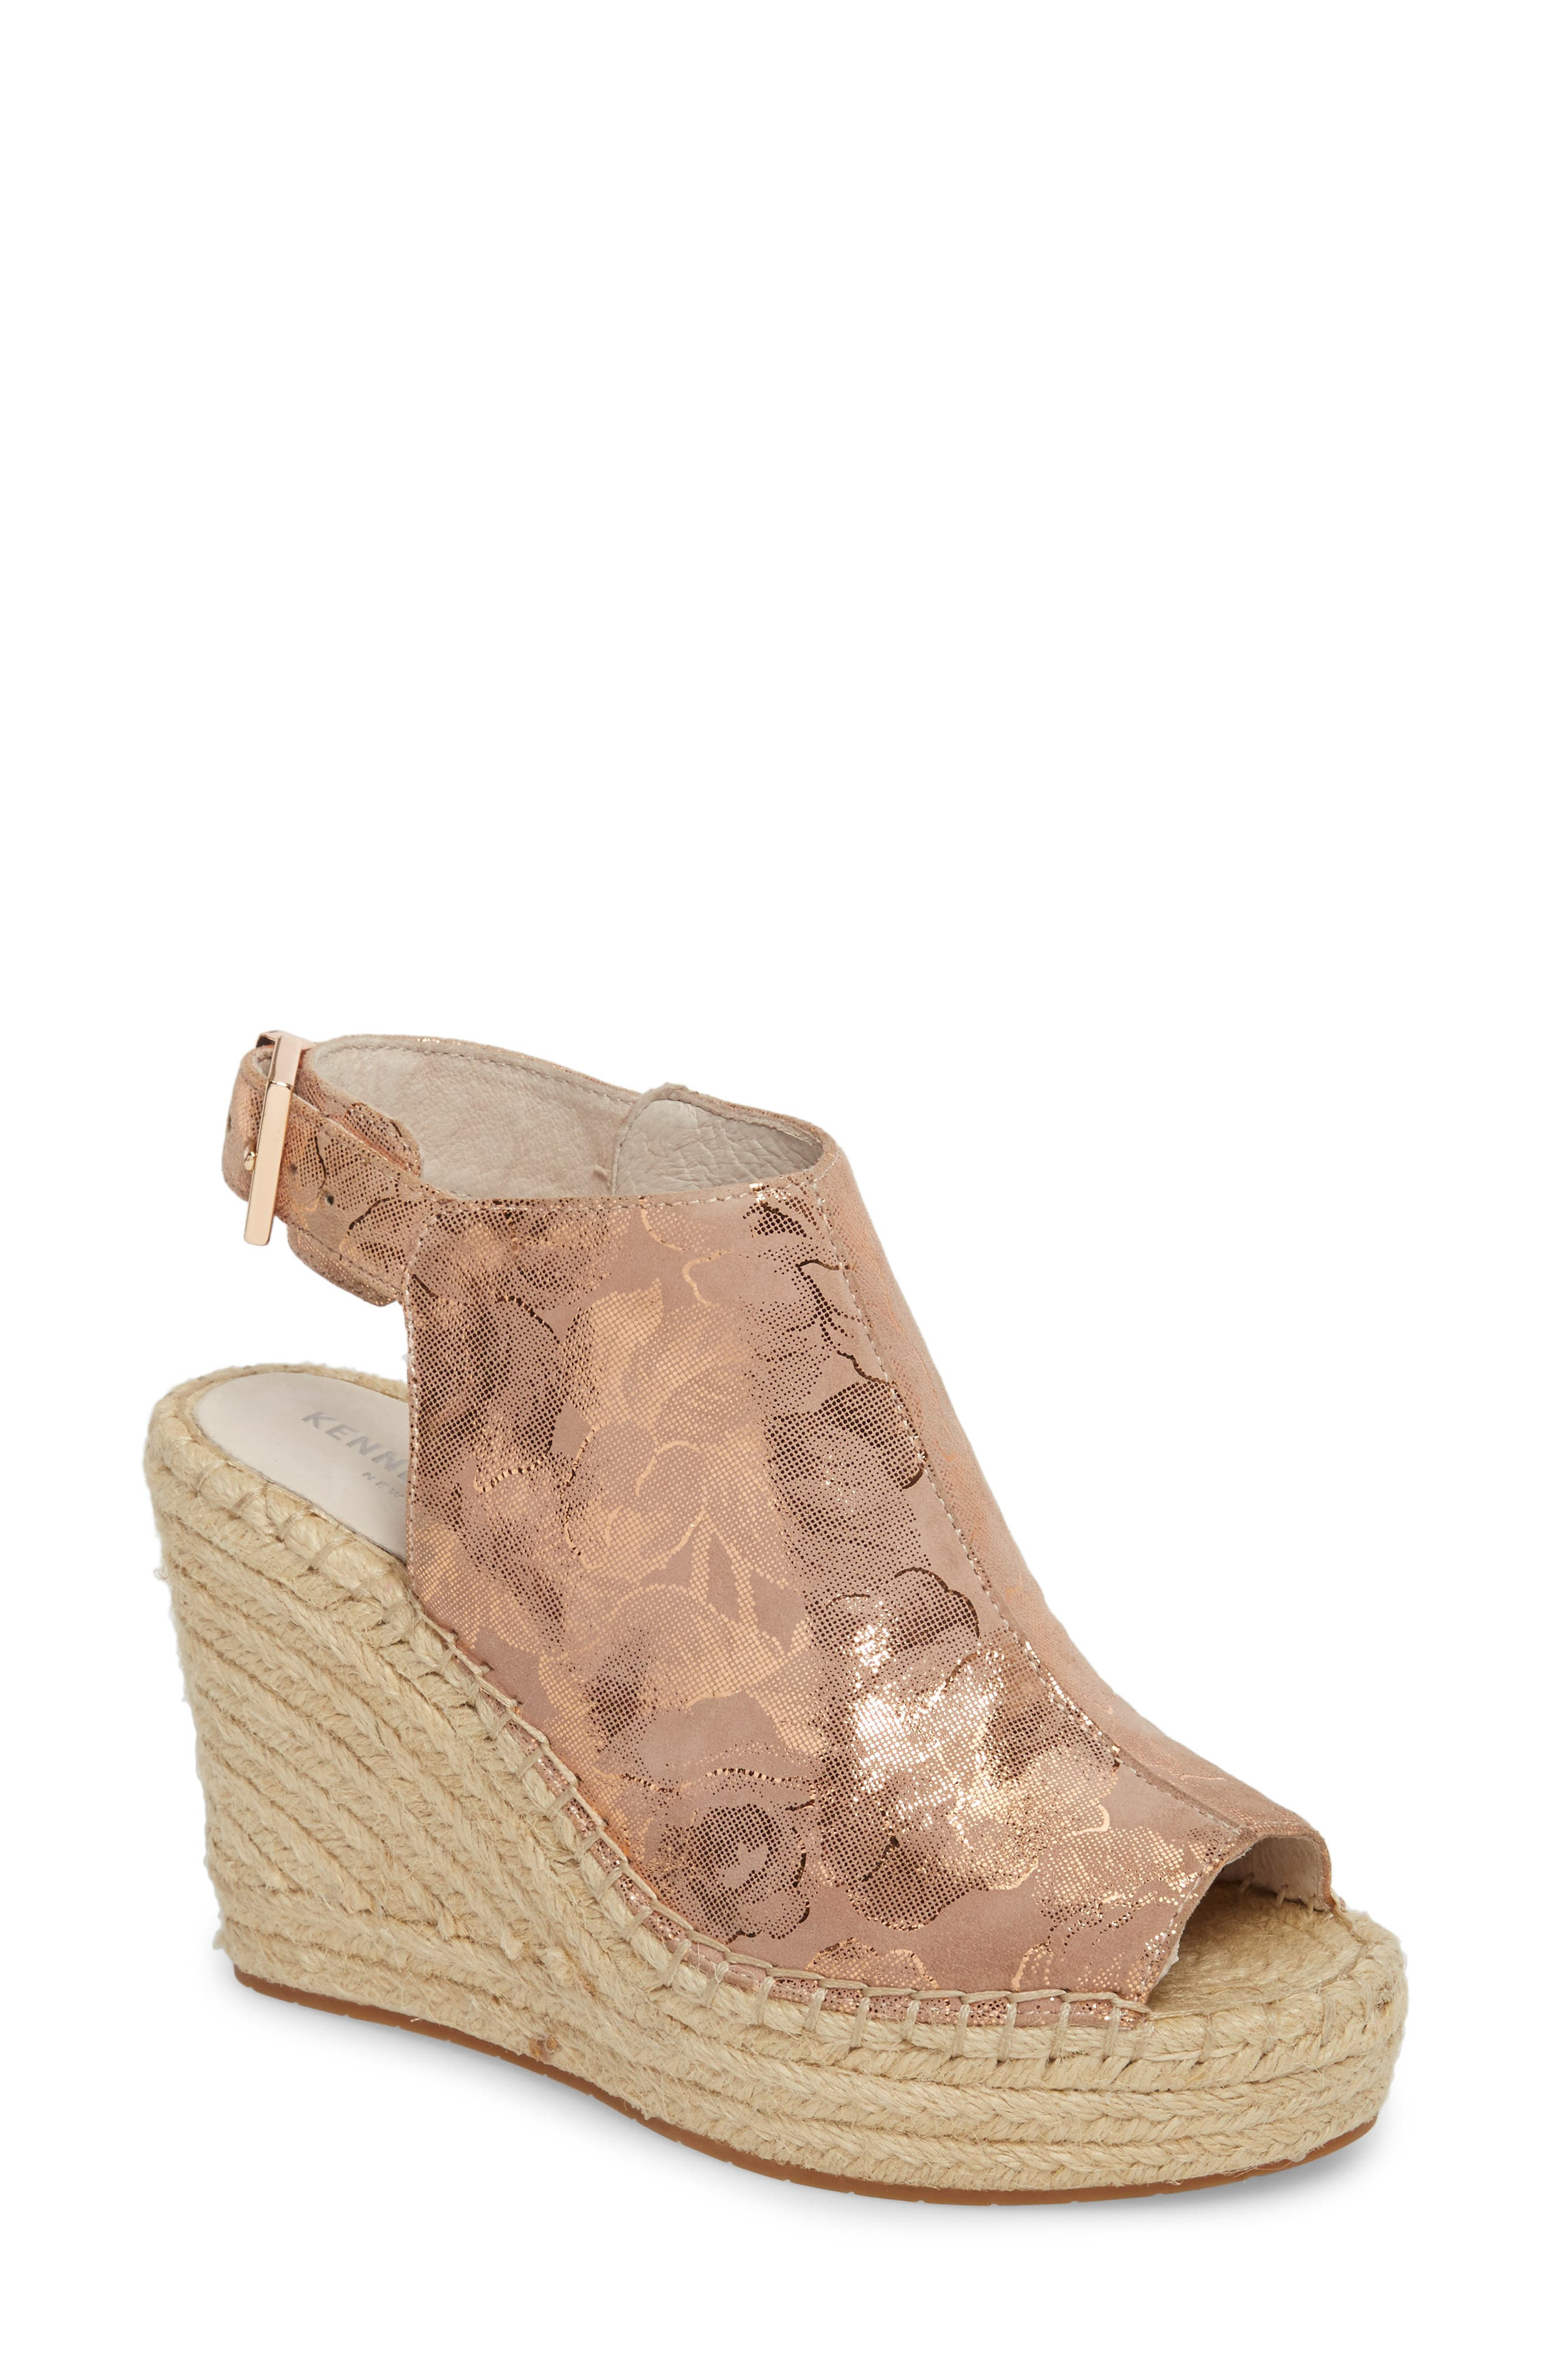 'Olivia' Wedge Sandal,                             Main thumbnail 1, color,                             ROSE GOLD LEATHER